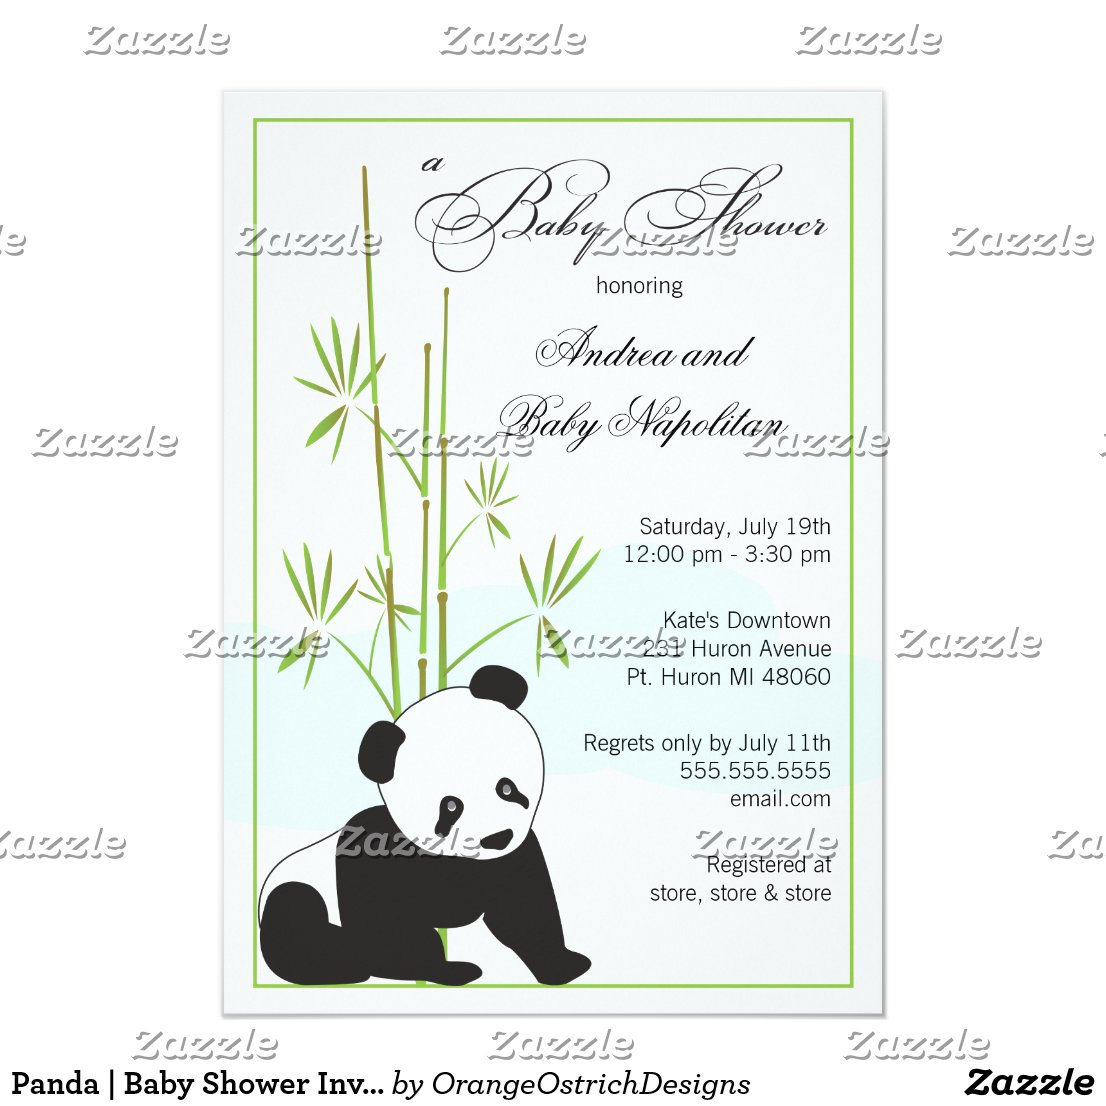 Panda | Baby Shower Invitations